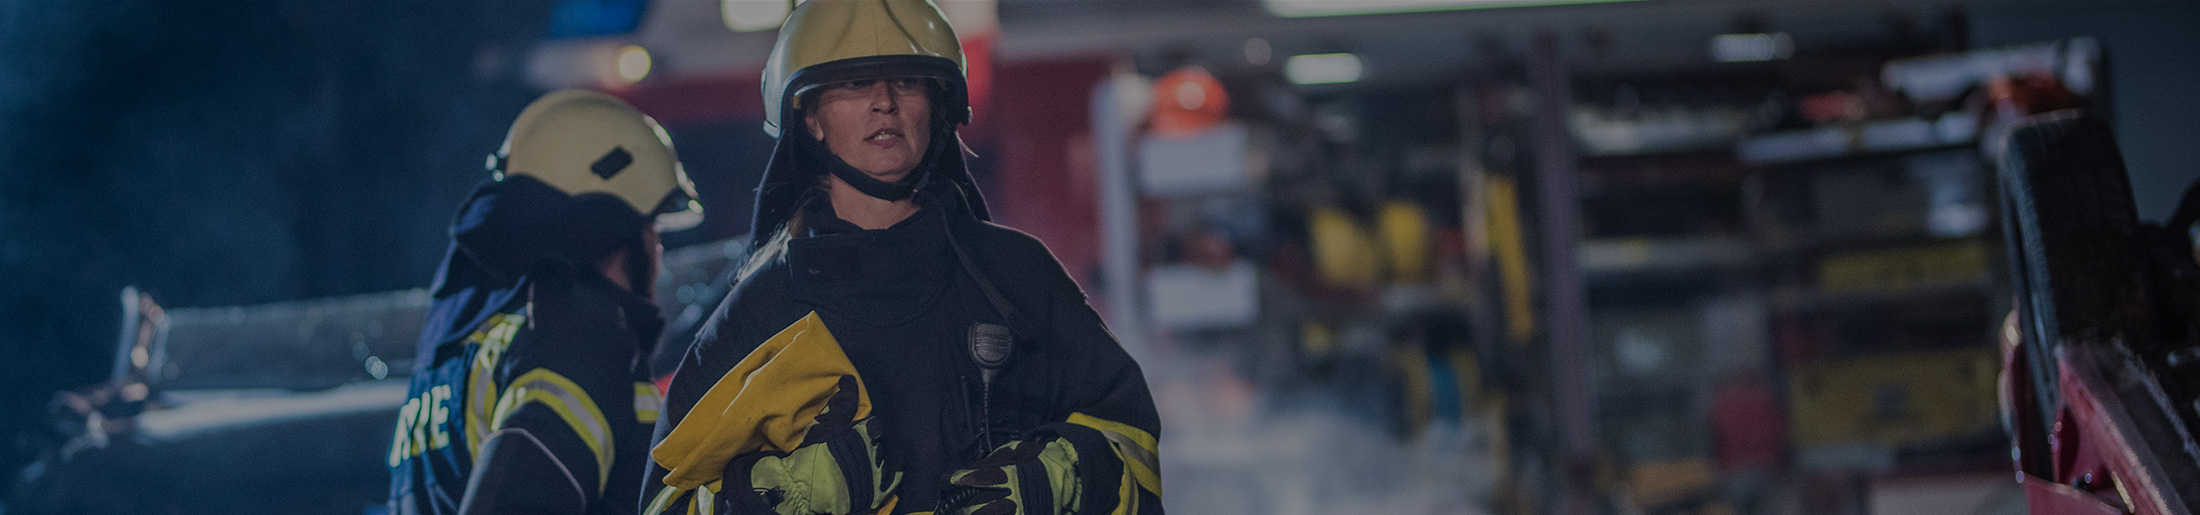 emergency services header image